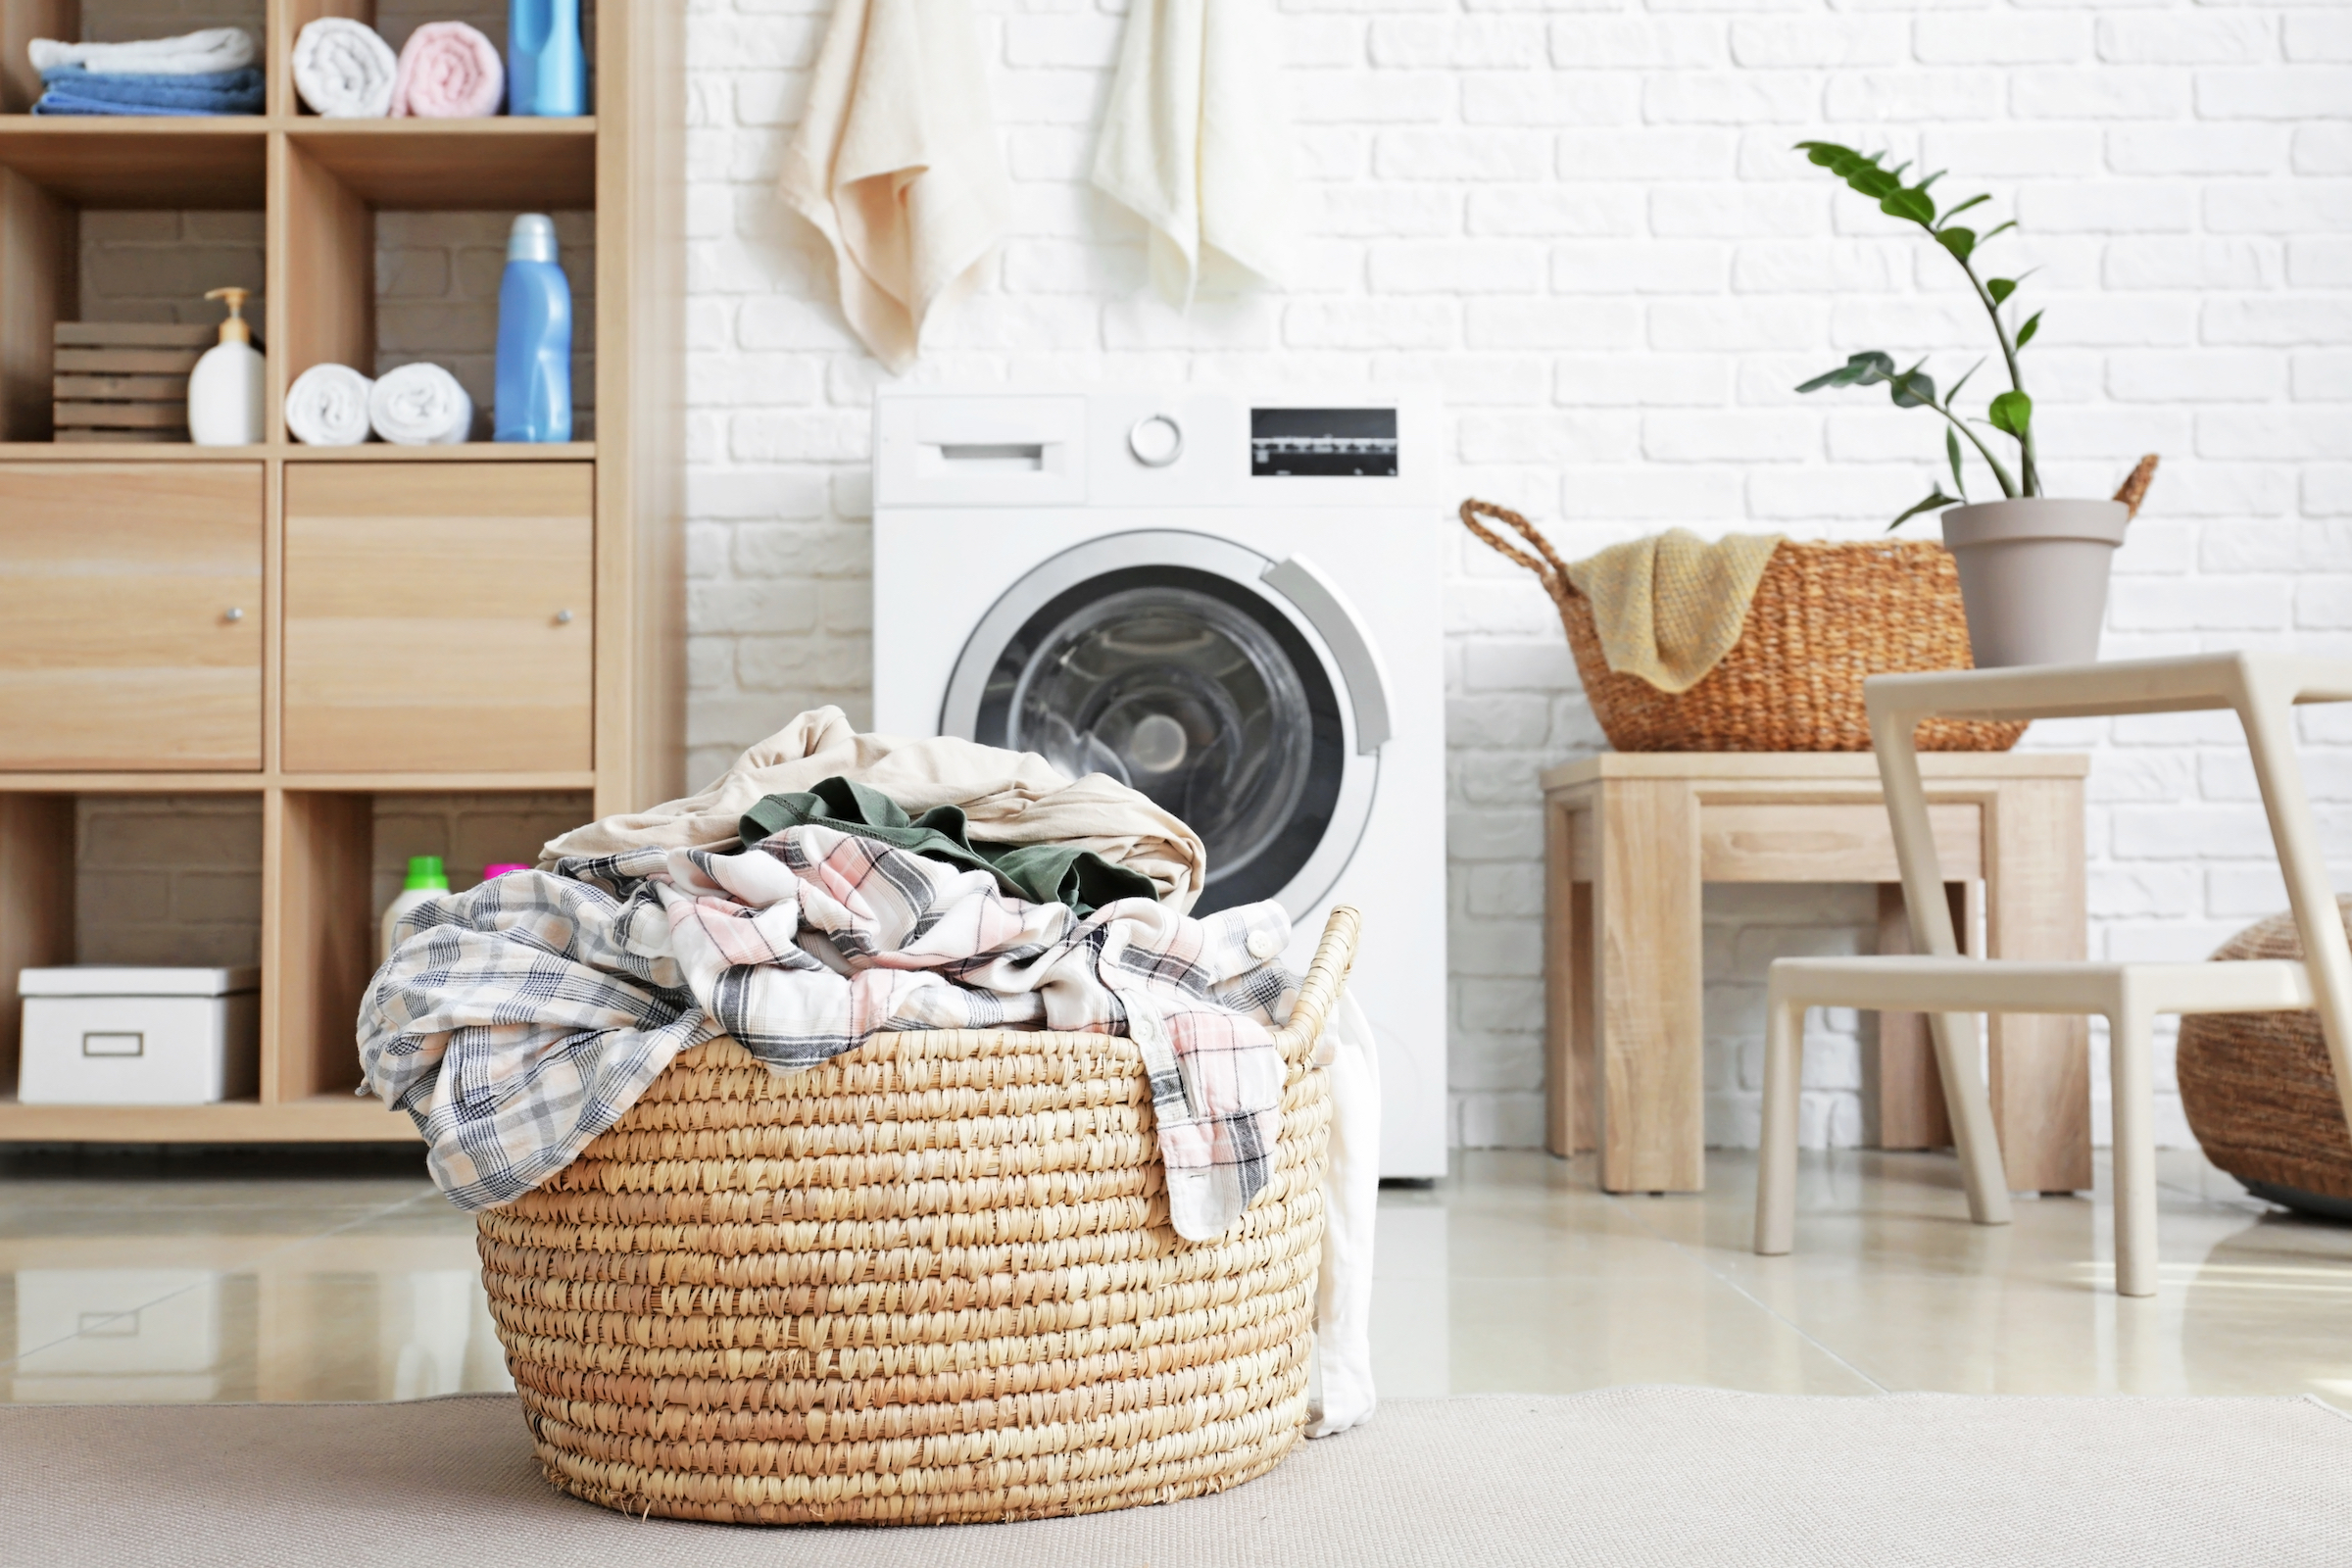 We pulled the best black Friday appliance deals 2019 for washing machines